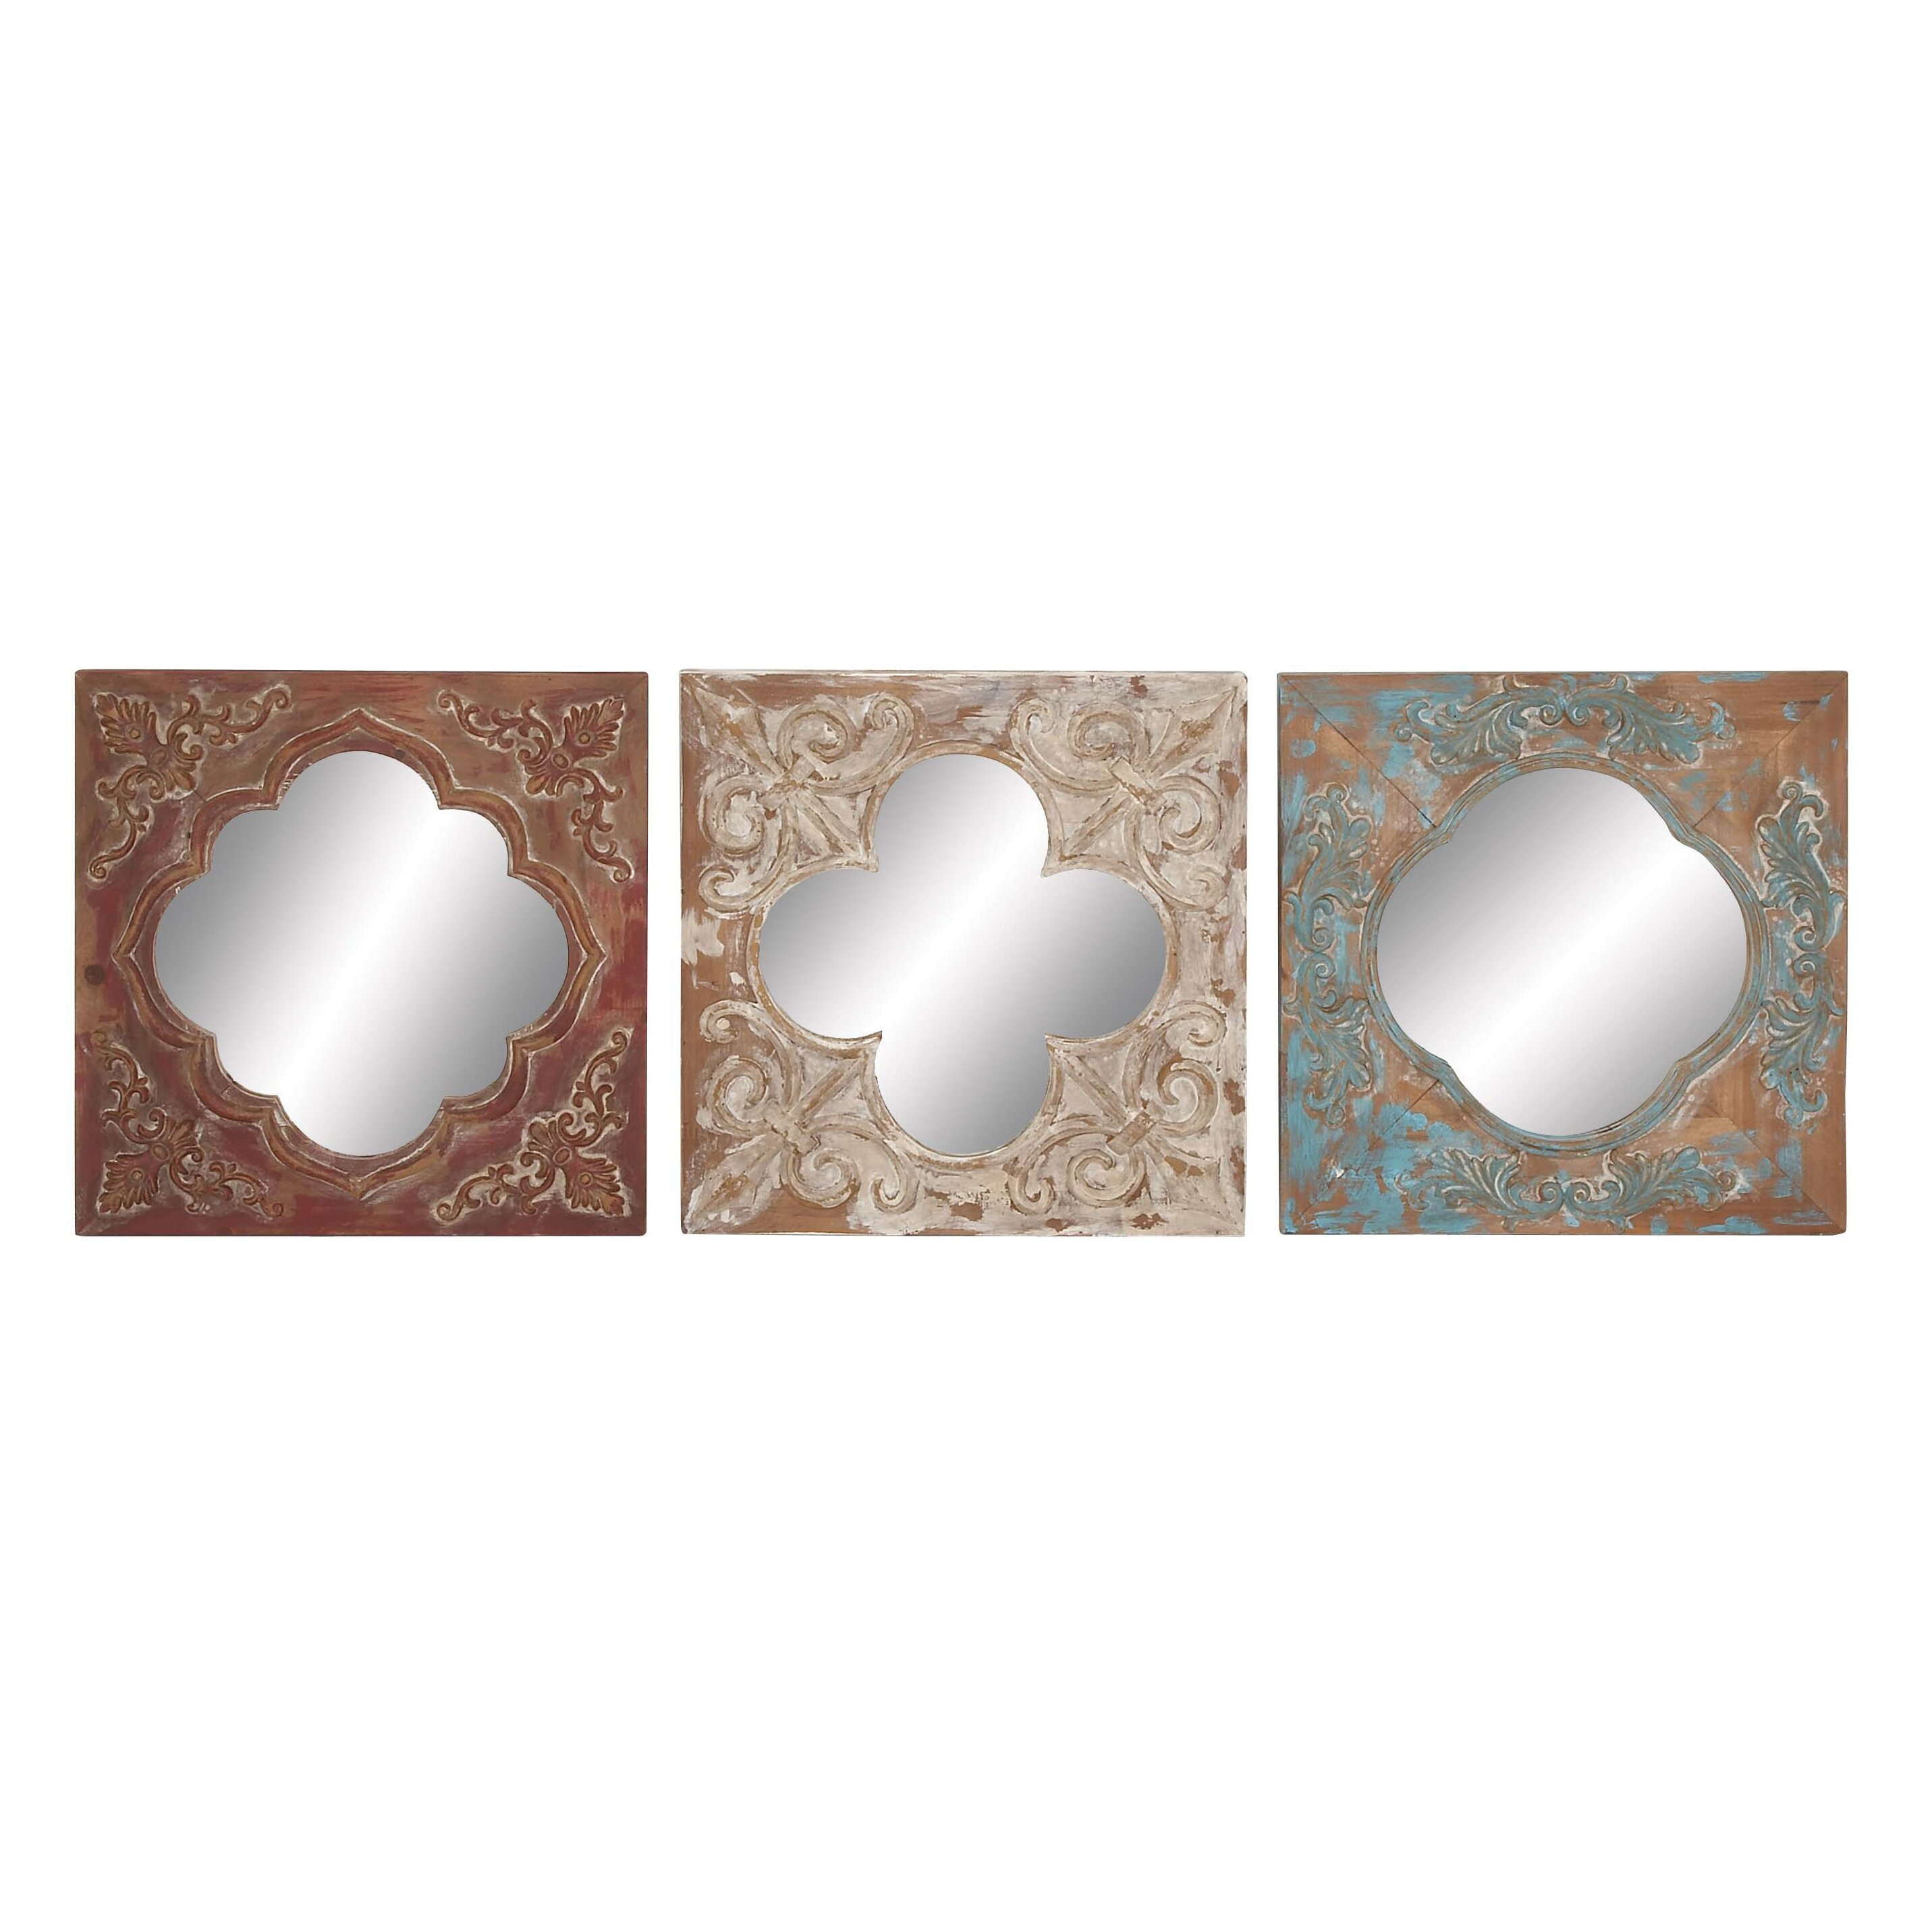 Mirror Wall Decor Set Of Three : Cole grey piece metal wood and mirror wall decor set